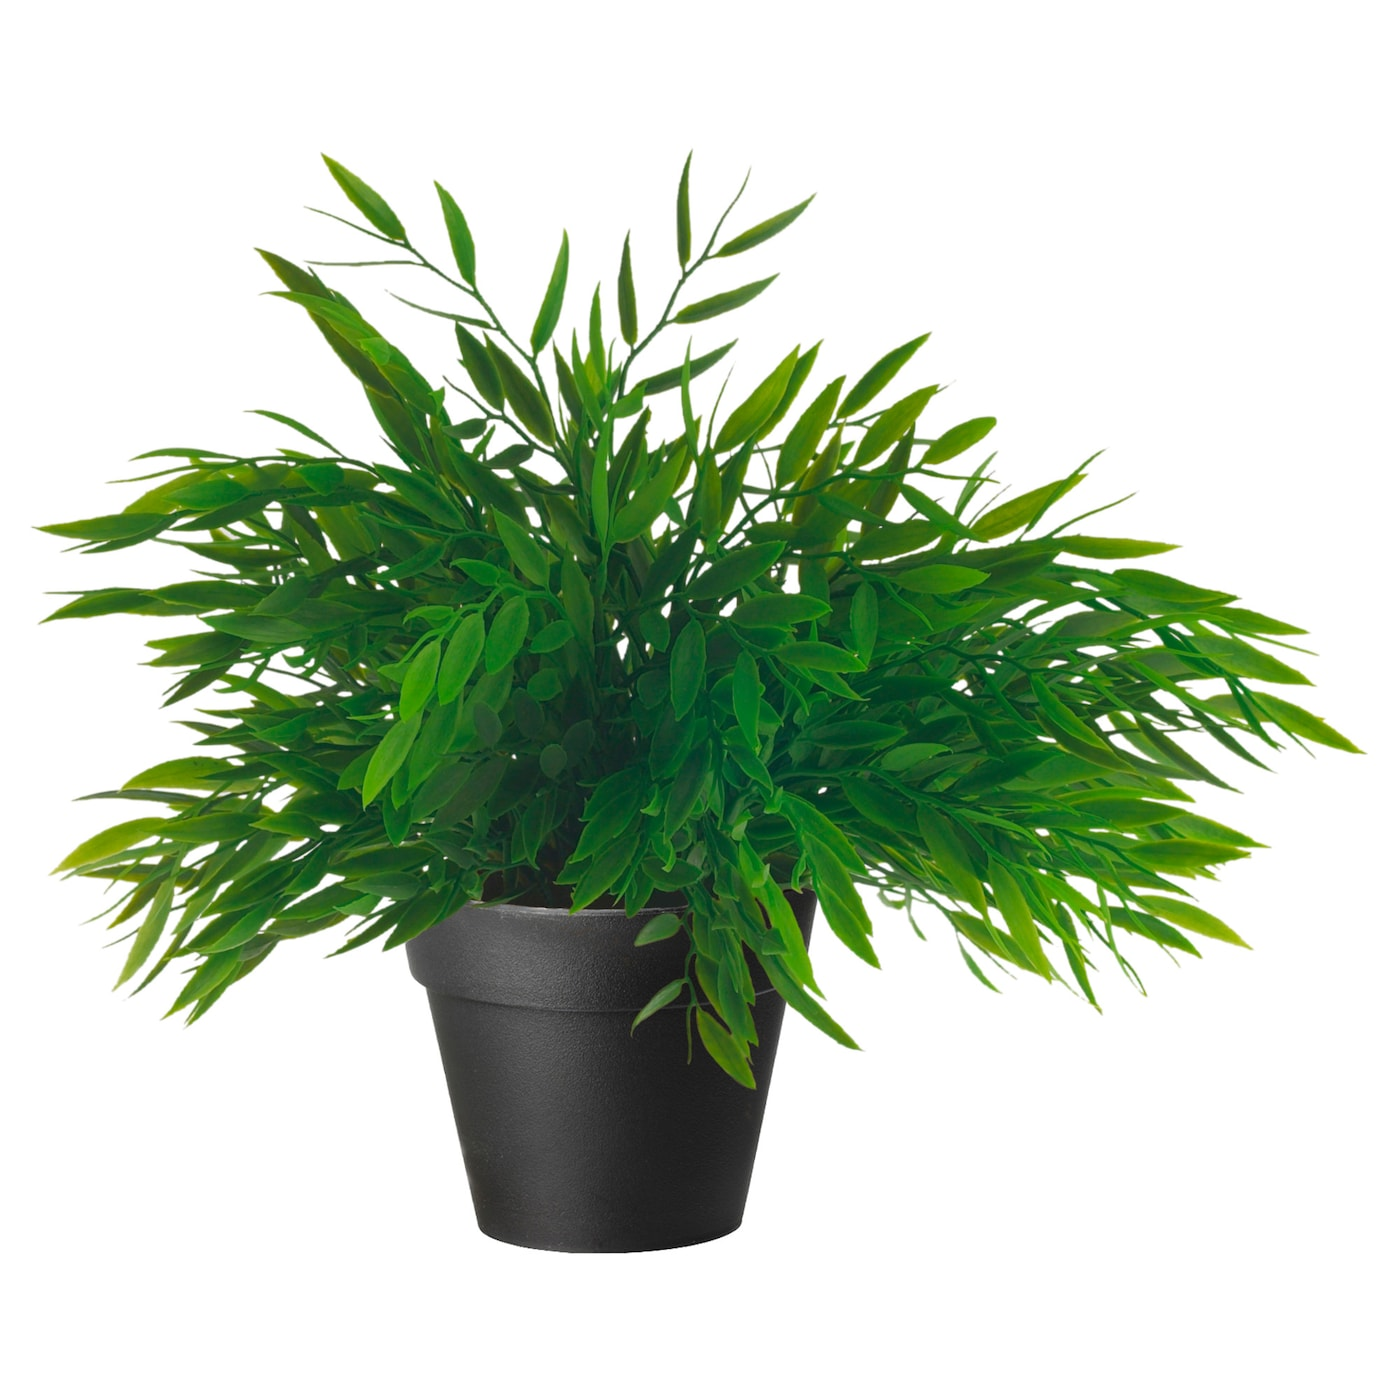 Fejka plante artificielle en pot bambou d 39 int rieur 10 cm for Plante artificielle exterieur ikea